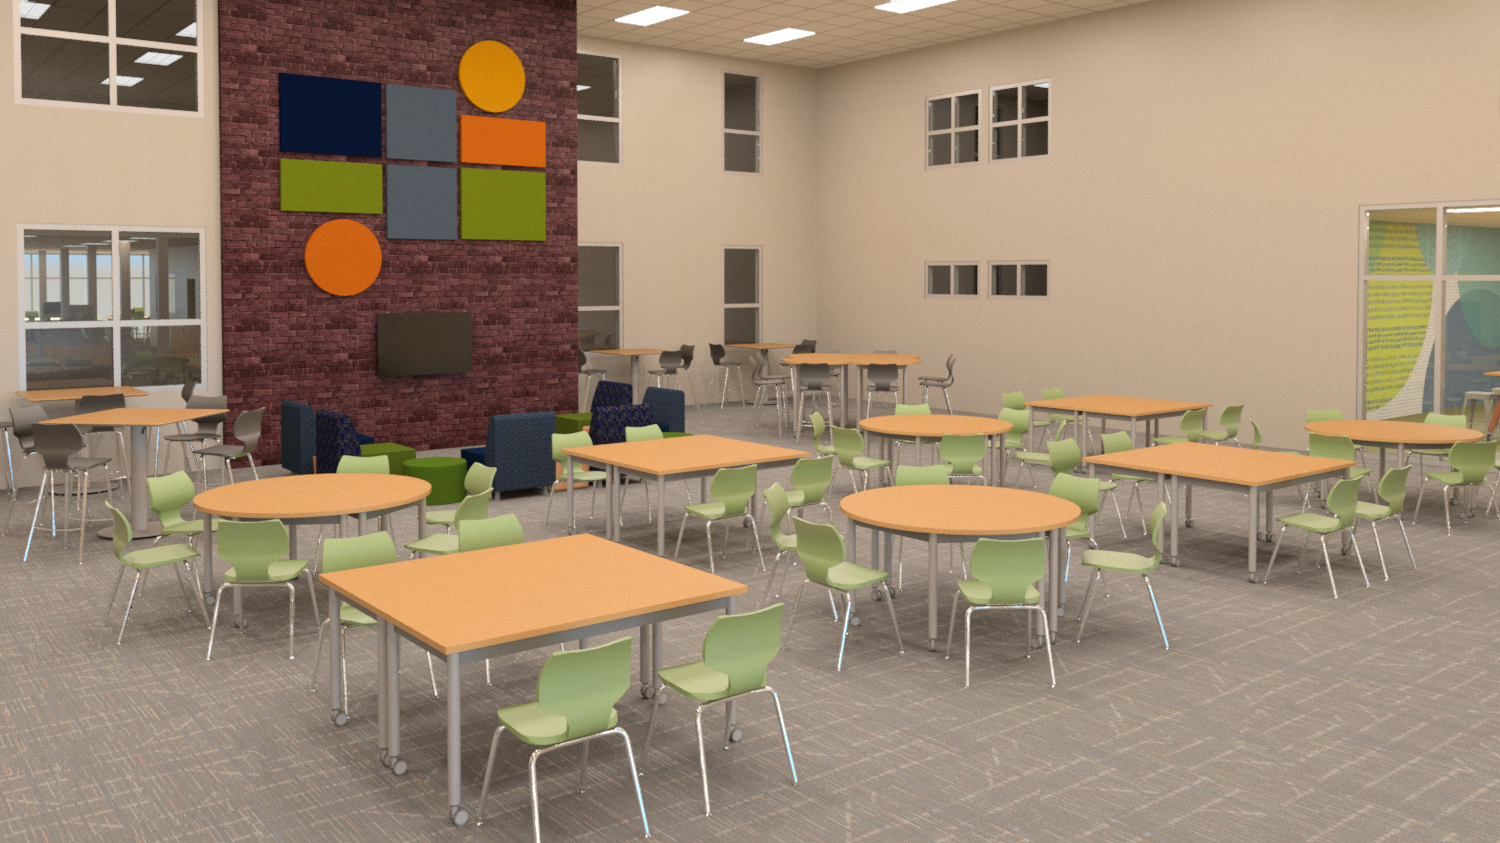 High school commons learning environment